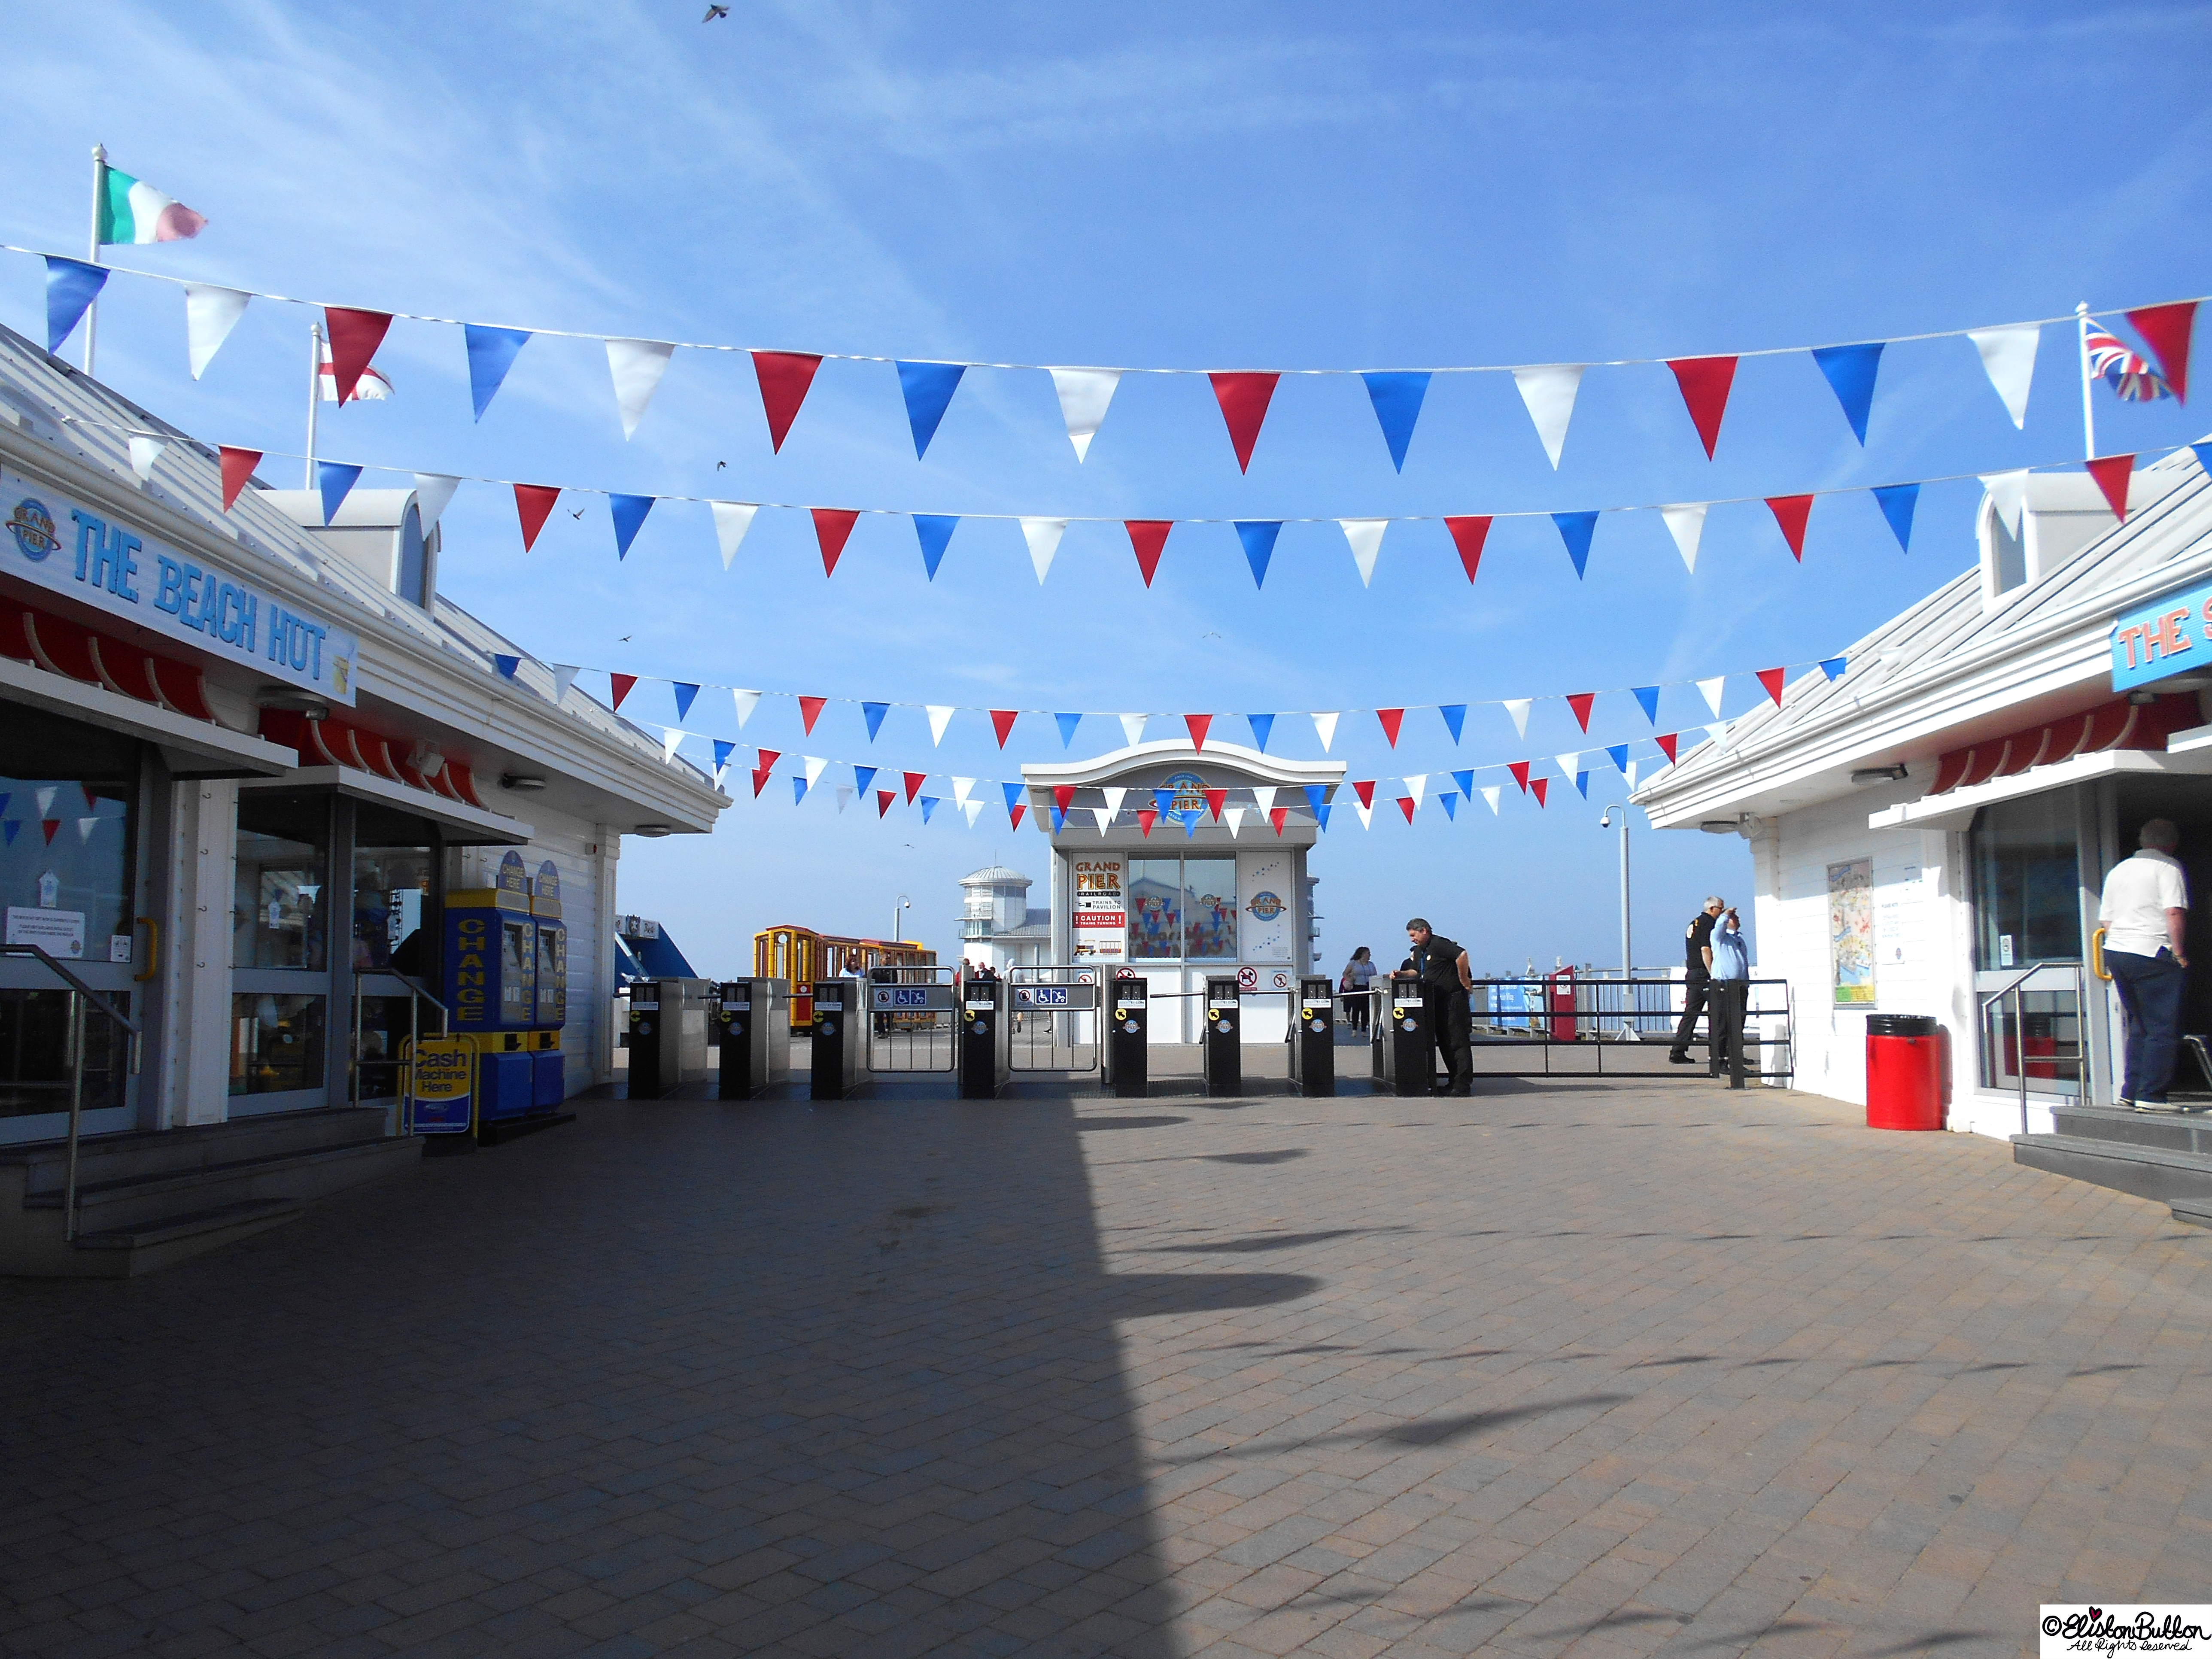 Seaside Pier Bunting - The Great British Seaside (and an Eliston Button Autumn Sale) at www.elistonbutton.com - Eliston Button - That Crafty Kid – Art, Design, Craft & Adventure.